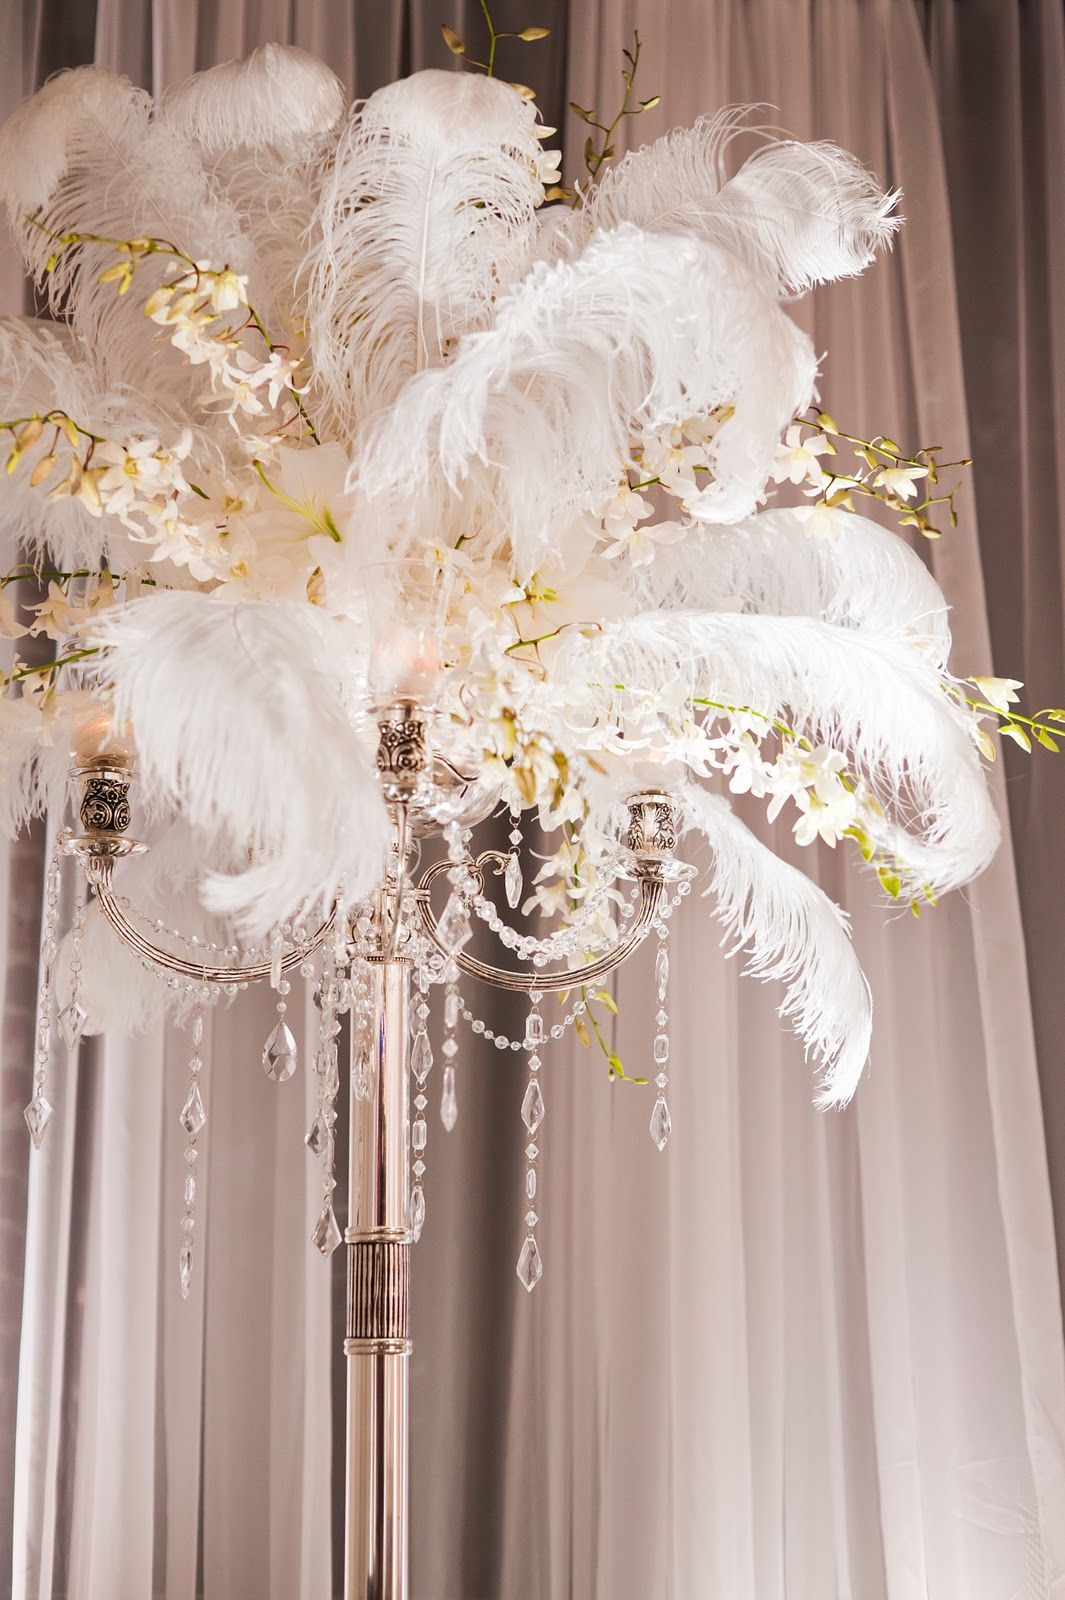 100 Pcs White Ostrich Feathers For Wedding Eiffel Tower Vase U Pick Size Usa